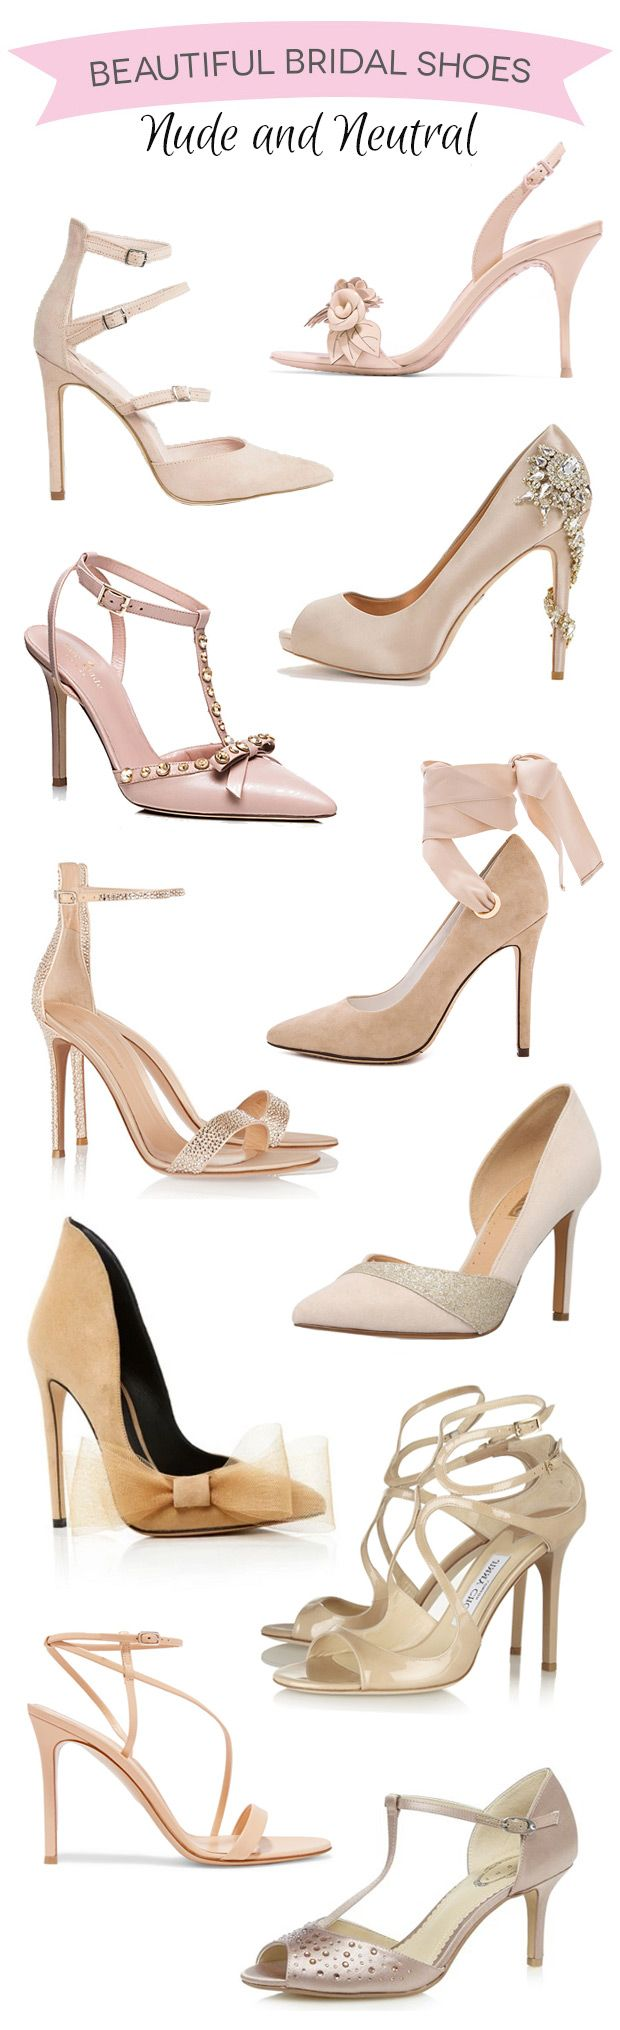 Beautiful Nude wedding shoes for brides, bridesmaids and guests // see them all…